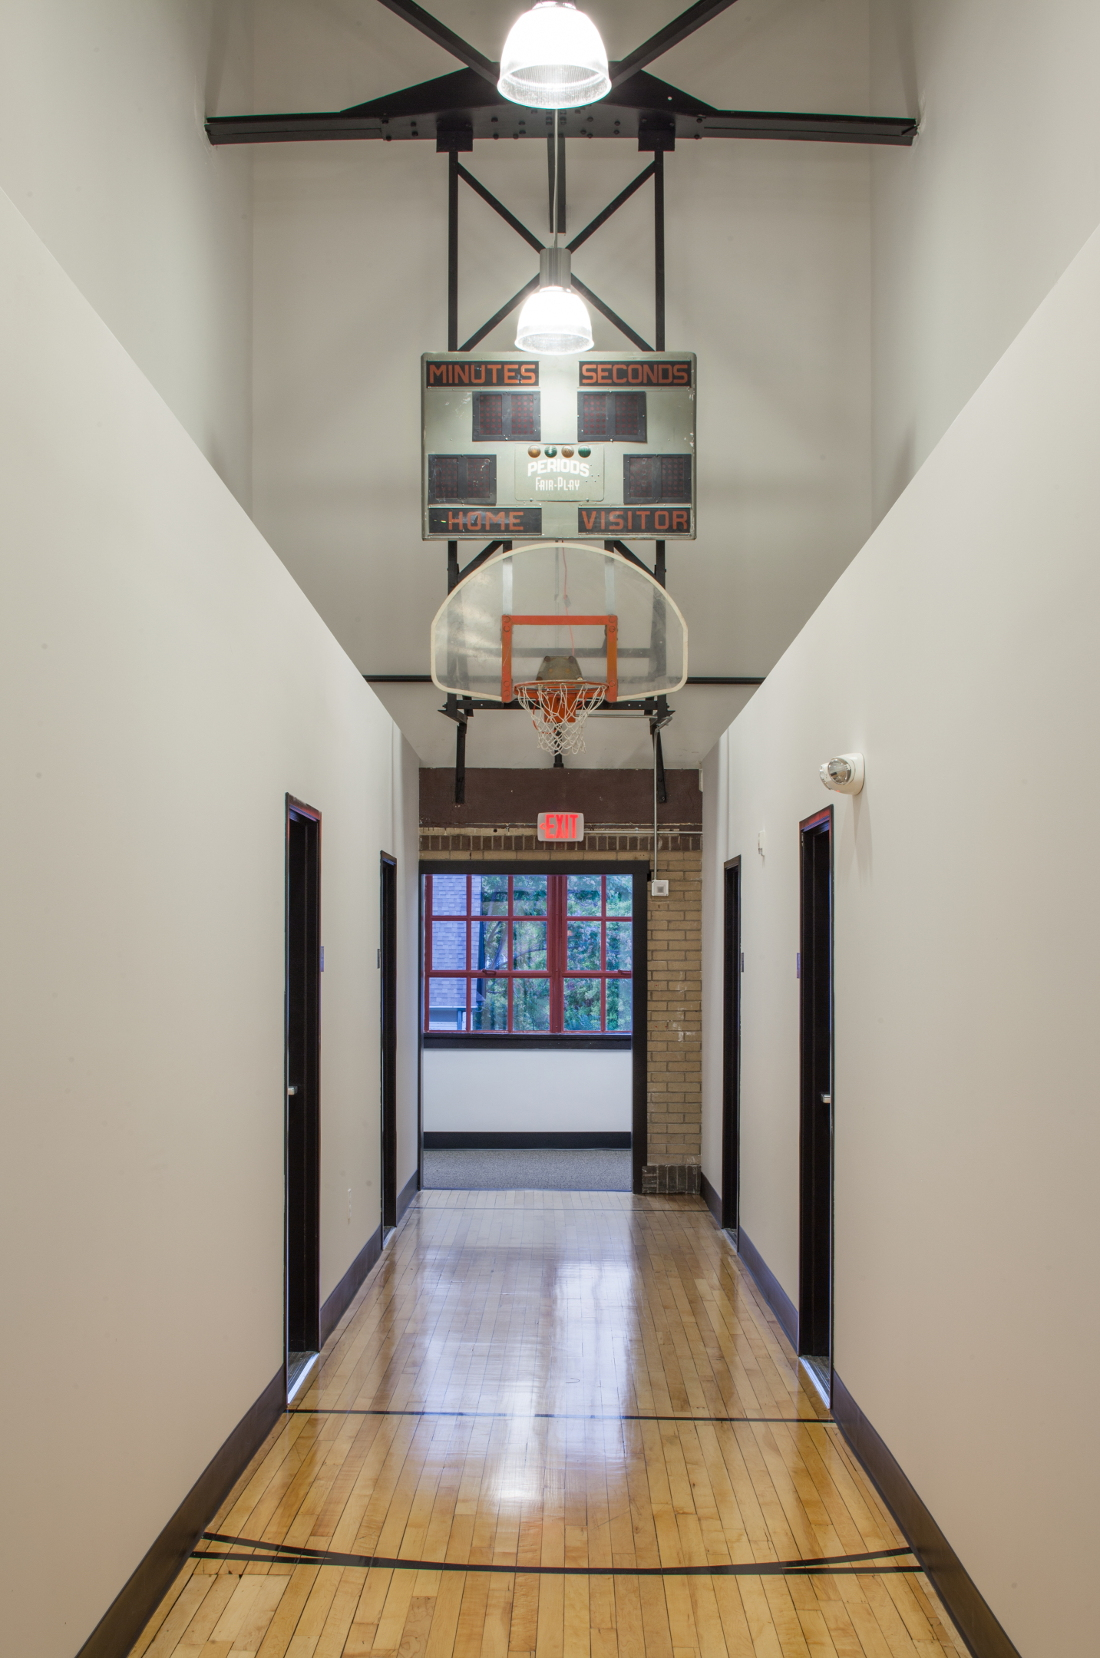 Indoor Basketball at 3 Point Apartments in Council Bluffs, IA